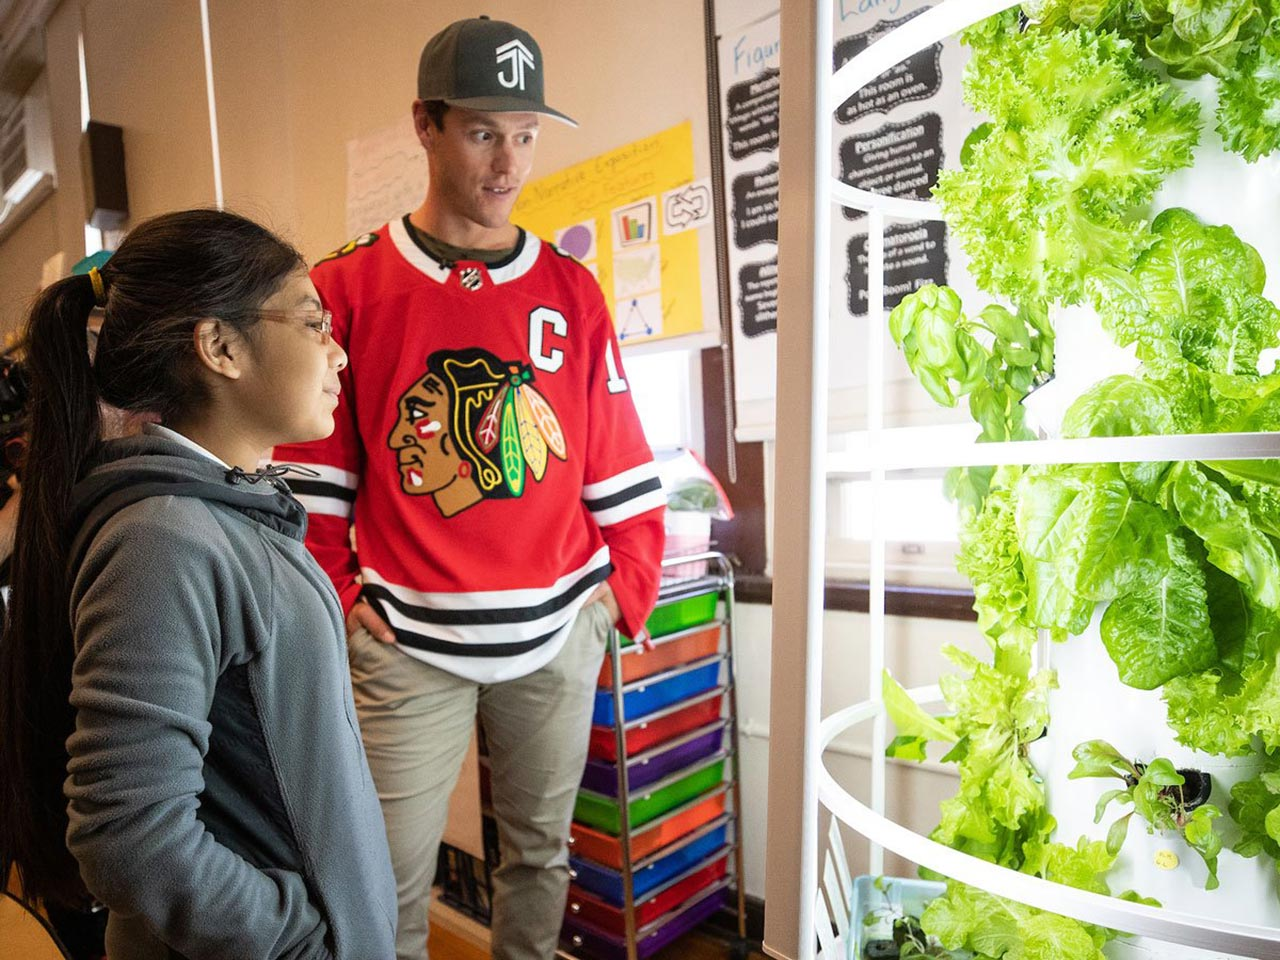 Green Bronx Machine is proud to partner with the Jonathan Toews Foundation and the Chicago Blackhawks to bring Tower Gardens and Green Bronx Machine Classroom Curriculum to schools across Chicagoland. Recently named the Chicagoan Of The Year for his work with Green Bronx Machine, Jonathan...